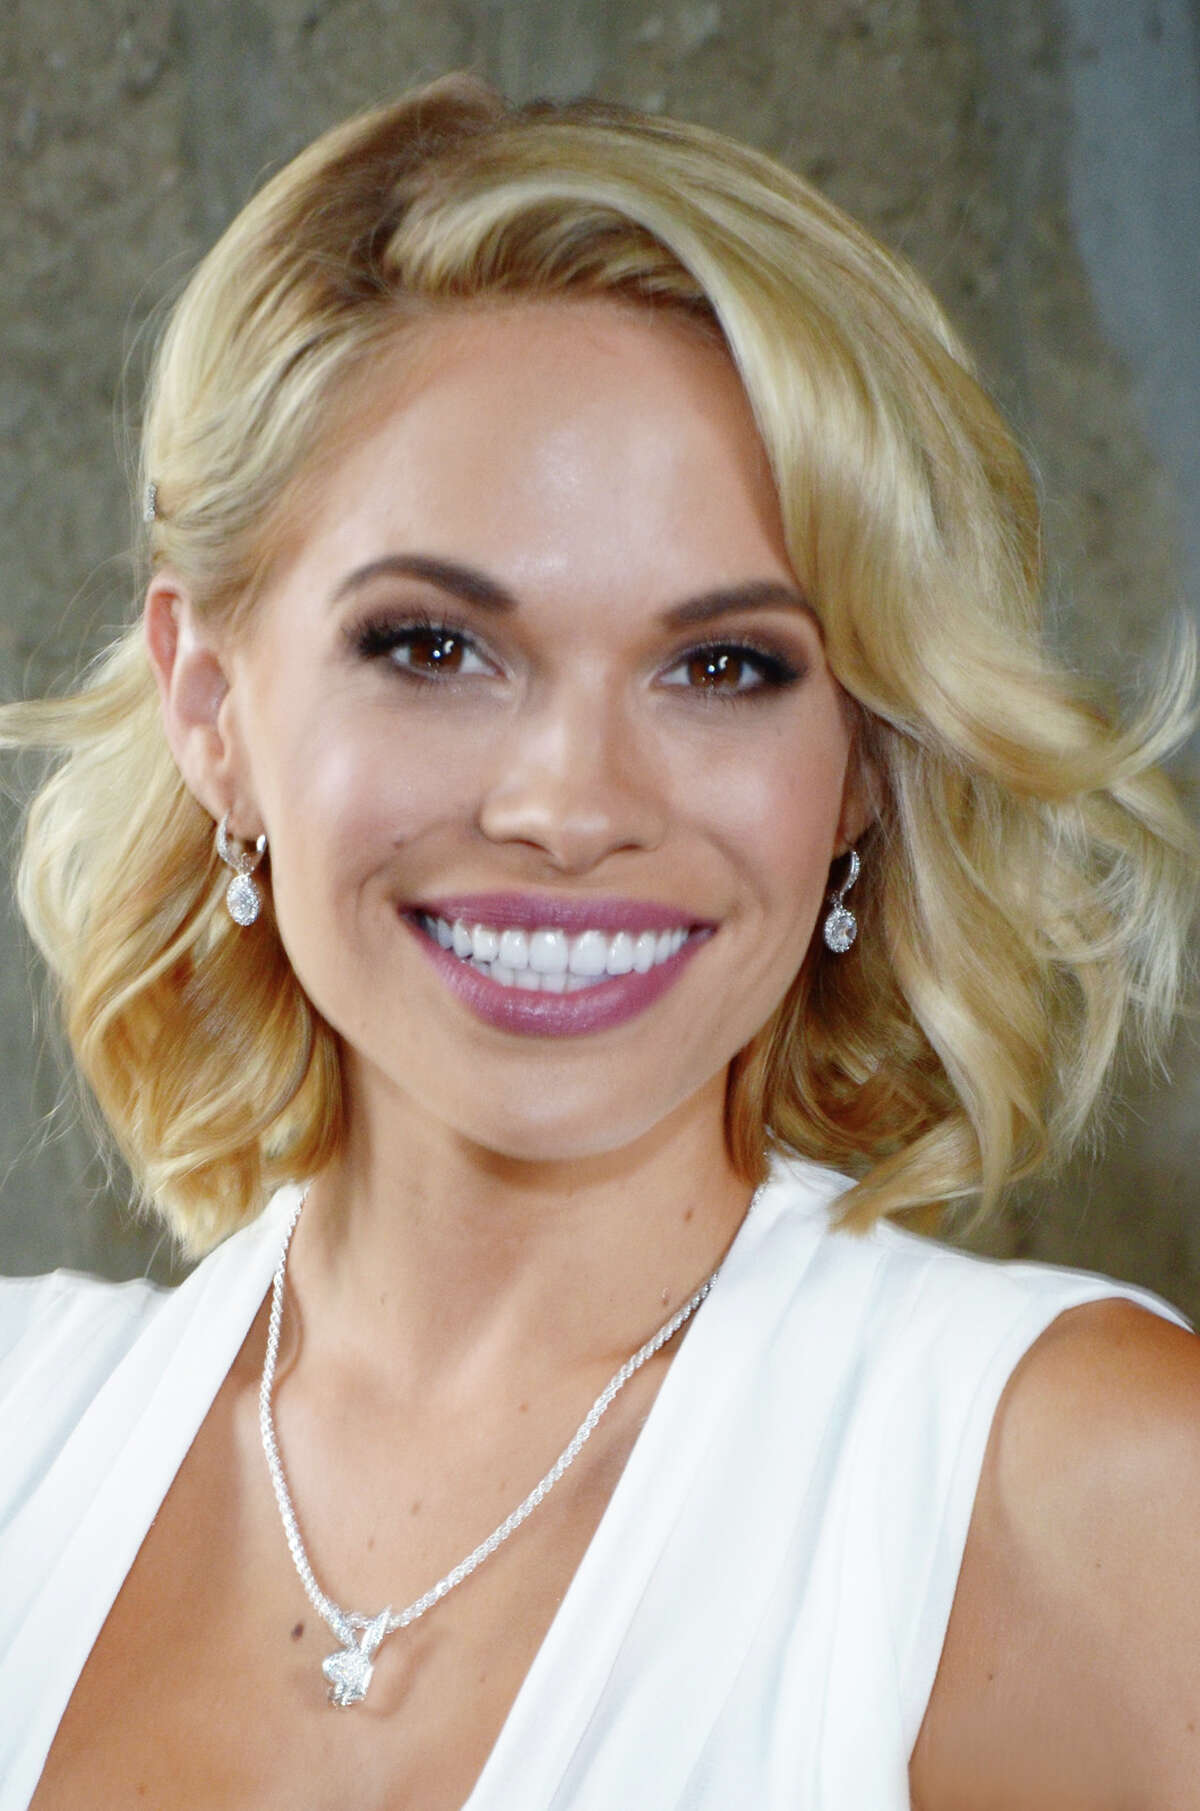 """Playboy's 2015 Playmate of the Year Dani Mathers is honored at Playboy's """"2015 Playmate Of The Year"""" announcement & luncheon at The Playboy Mansion on May 14, 2015 in Los Angeles, California."""